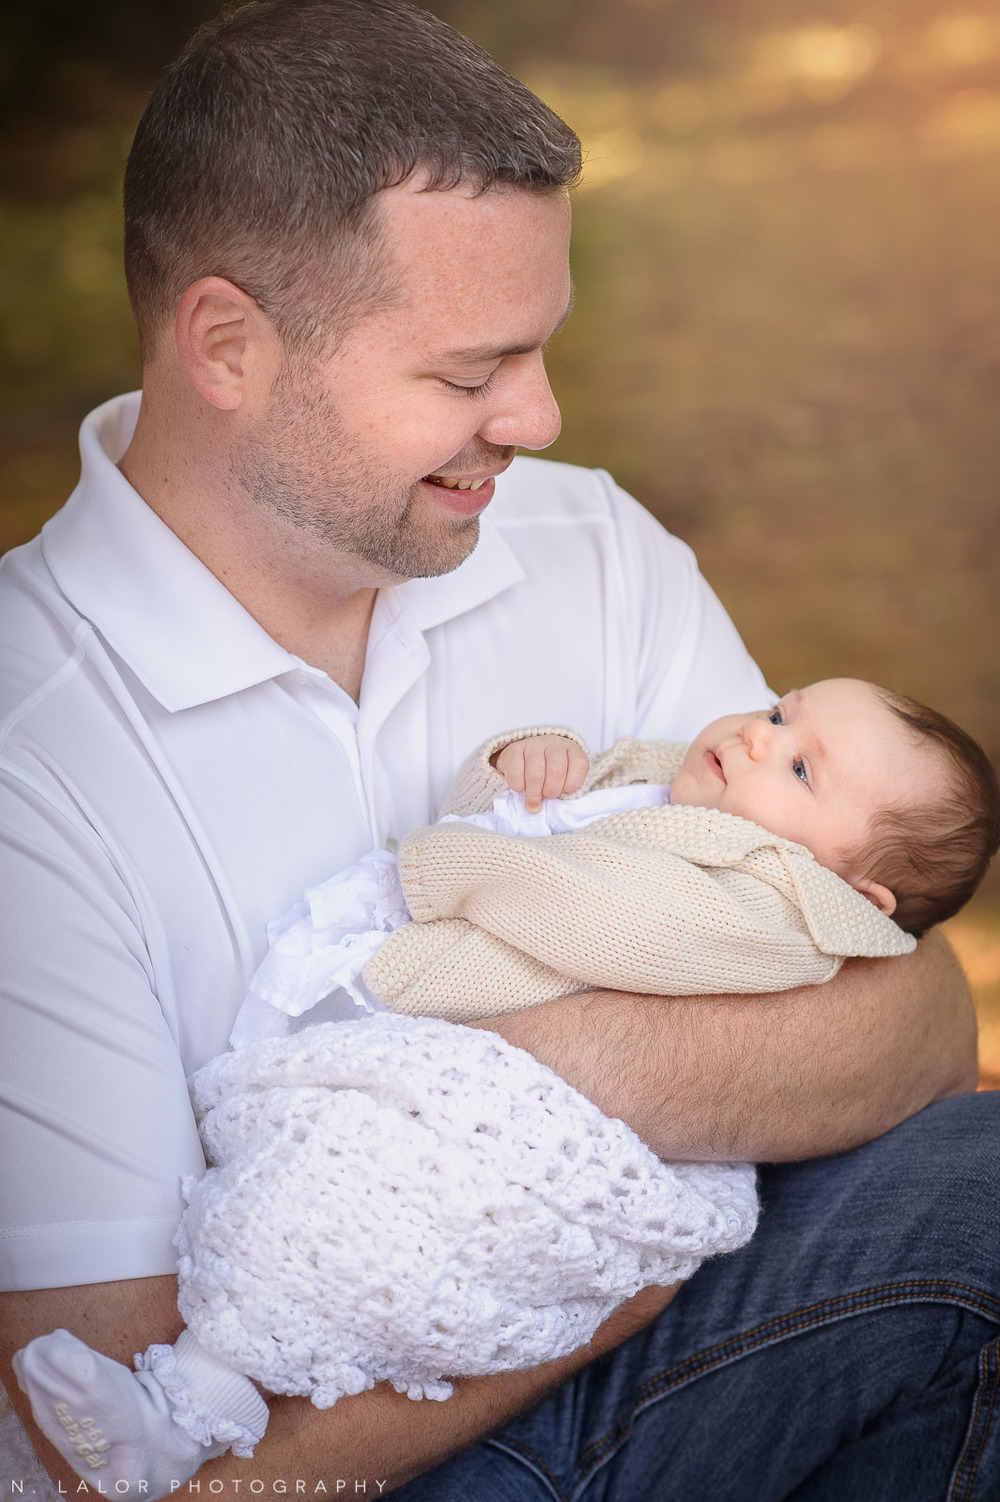 nlalor-photography-2-month-old-baby-family-session-connecticut-3.jpg